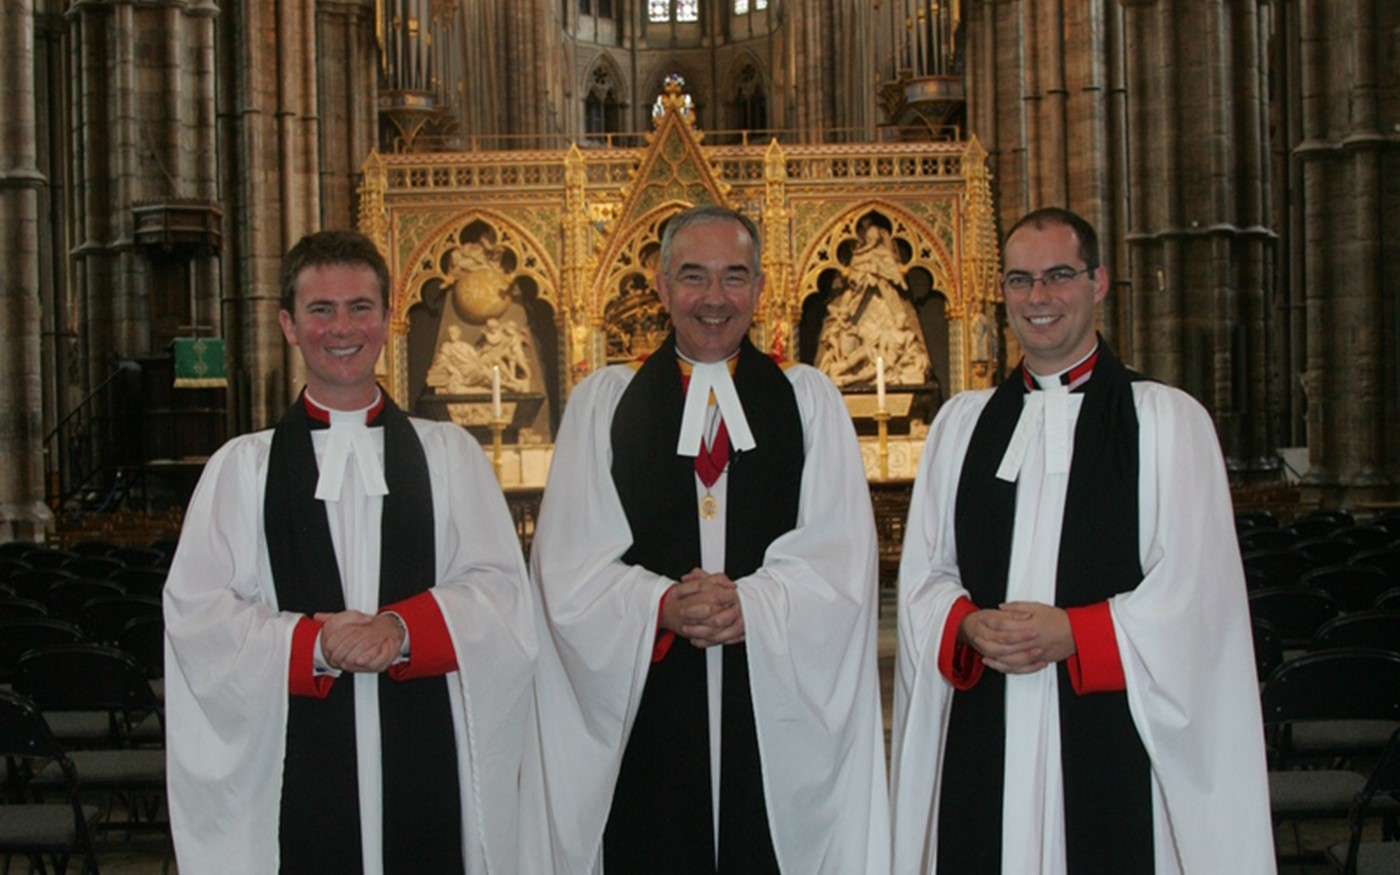 L to R: Newly appointed Minor Canon The Reverend Dr James Hawkey; The Very Reverend Dr John Hall, Dean of Westminster; and The Reverend Michael Macey, Senior Minor Canon of Westminster